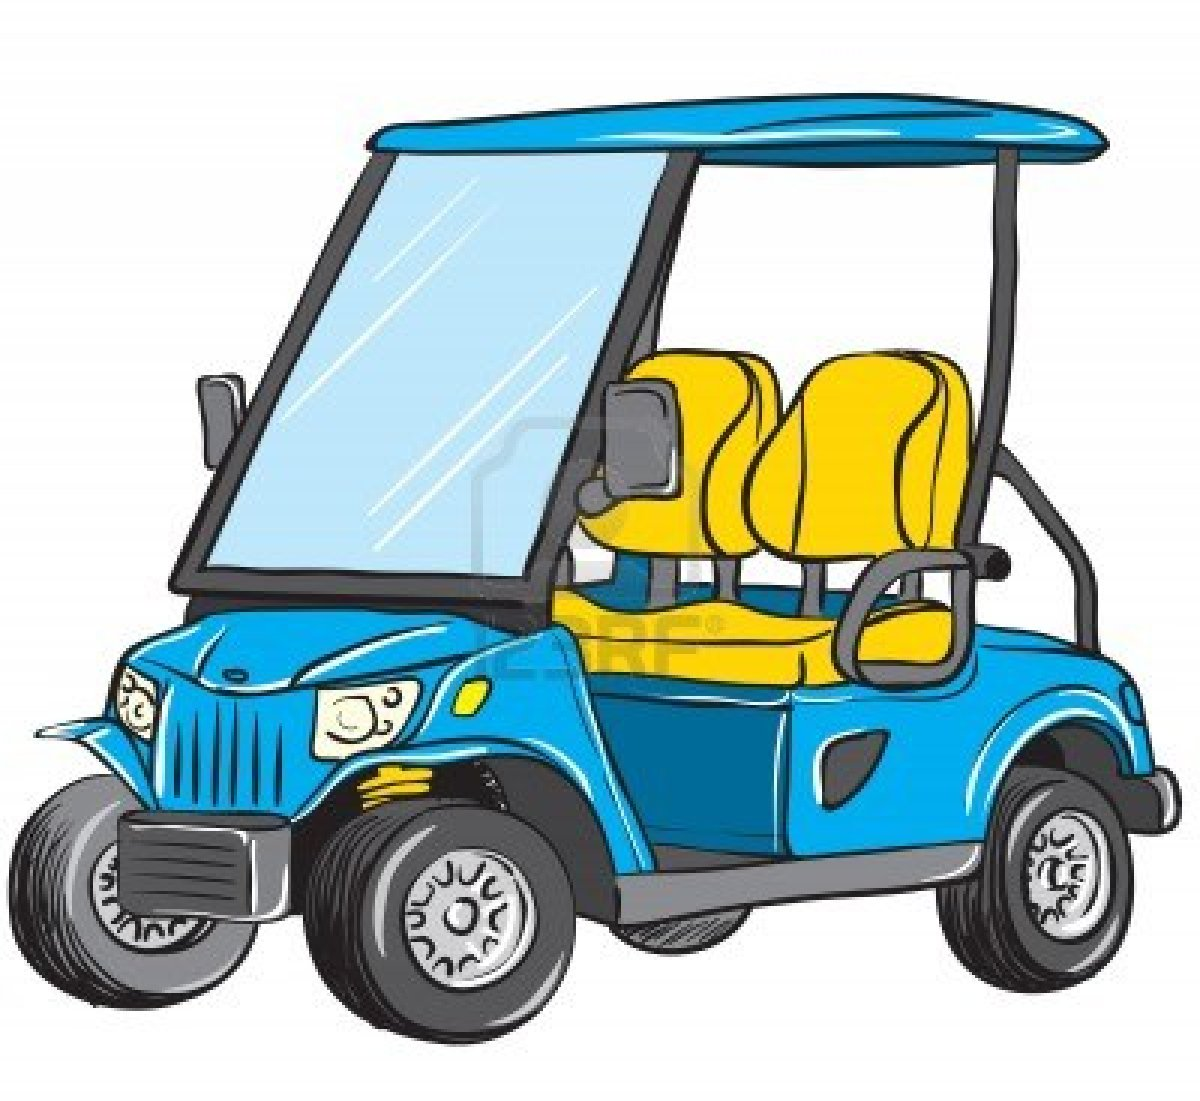 Free Golf Cart Clipart, Download Free Clip Art, Free Clip.